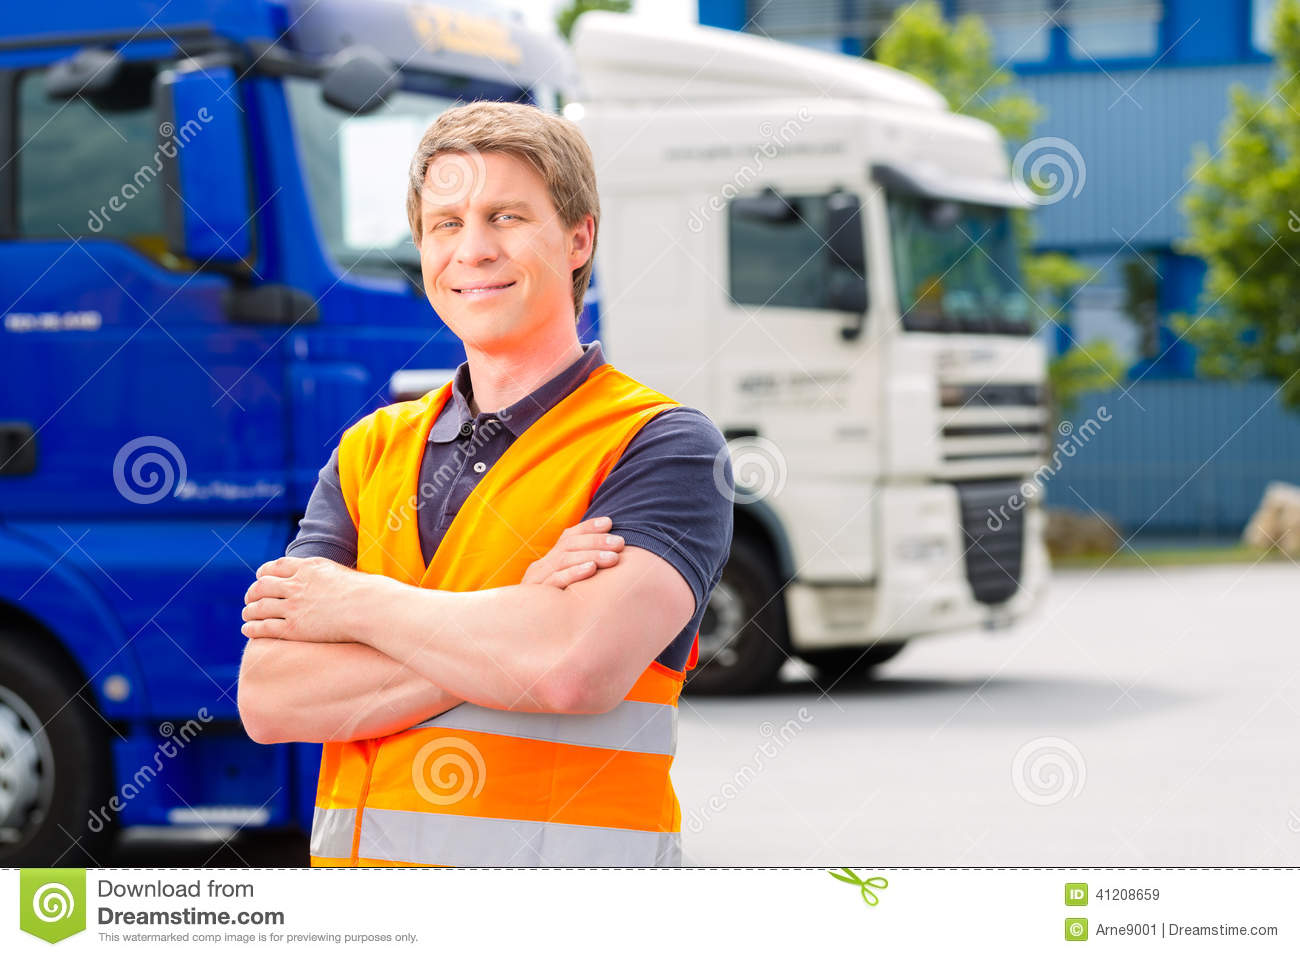 Forwarder in front of trucks on a depot